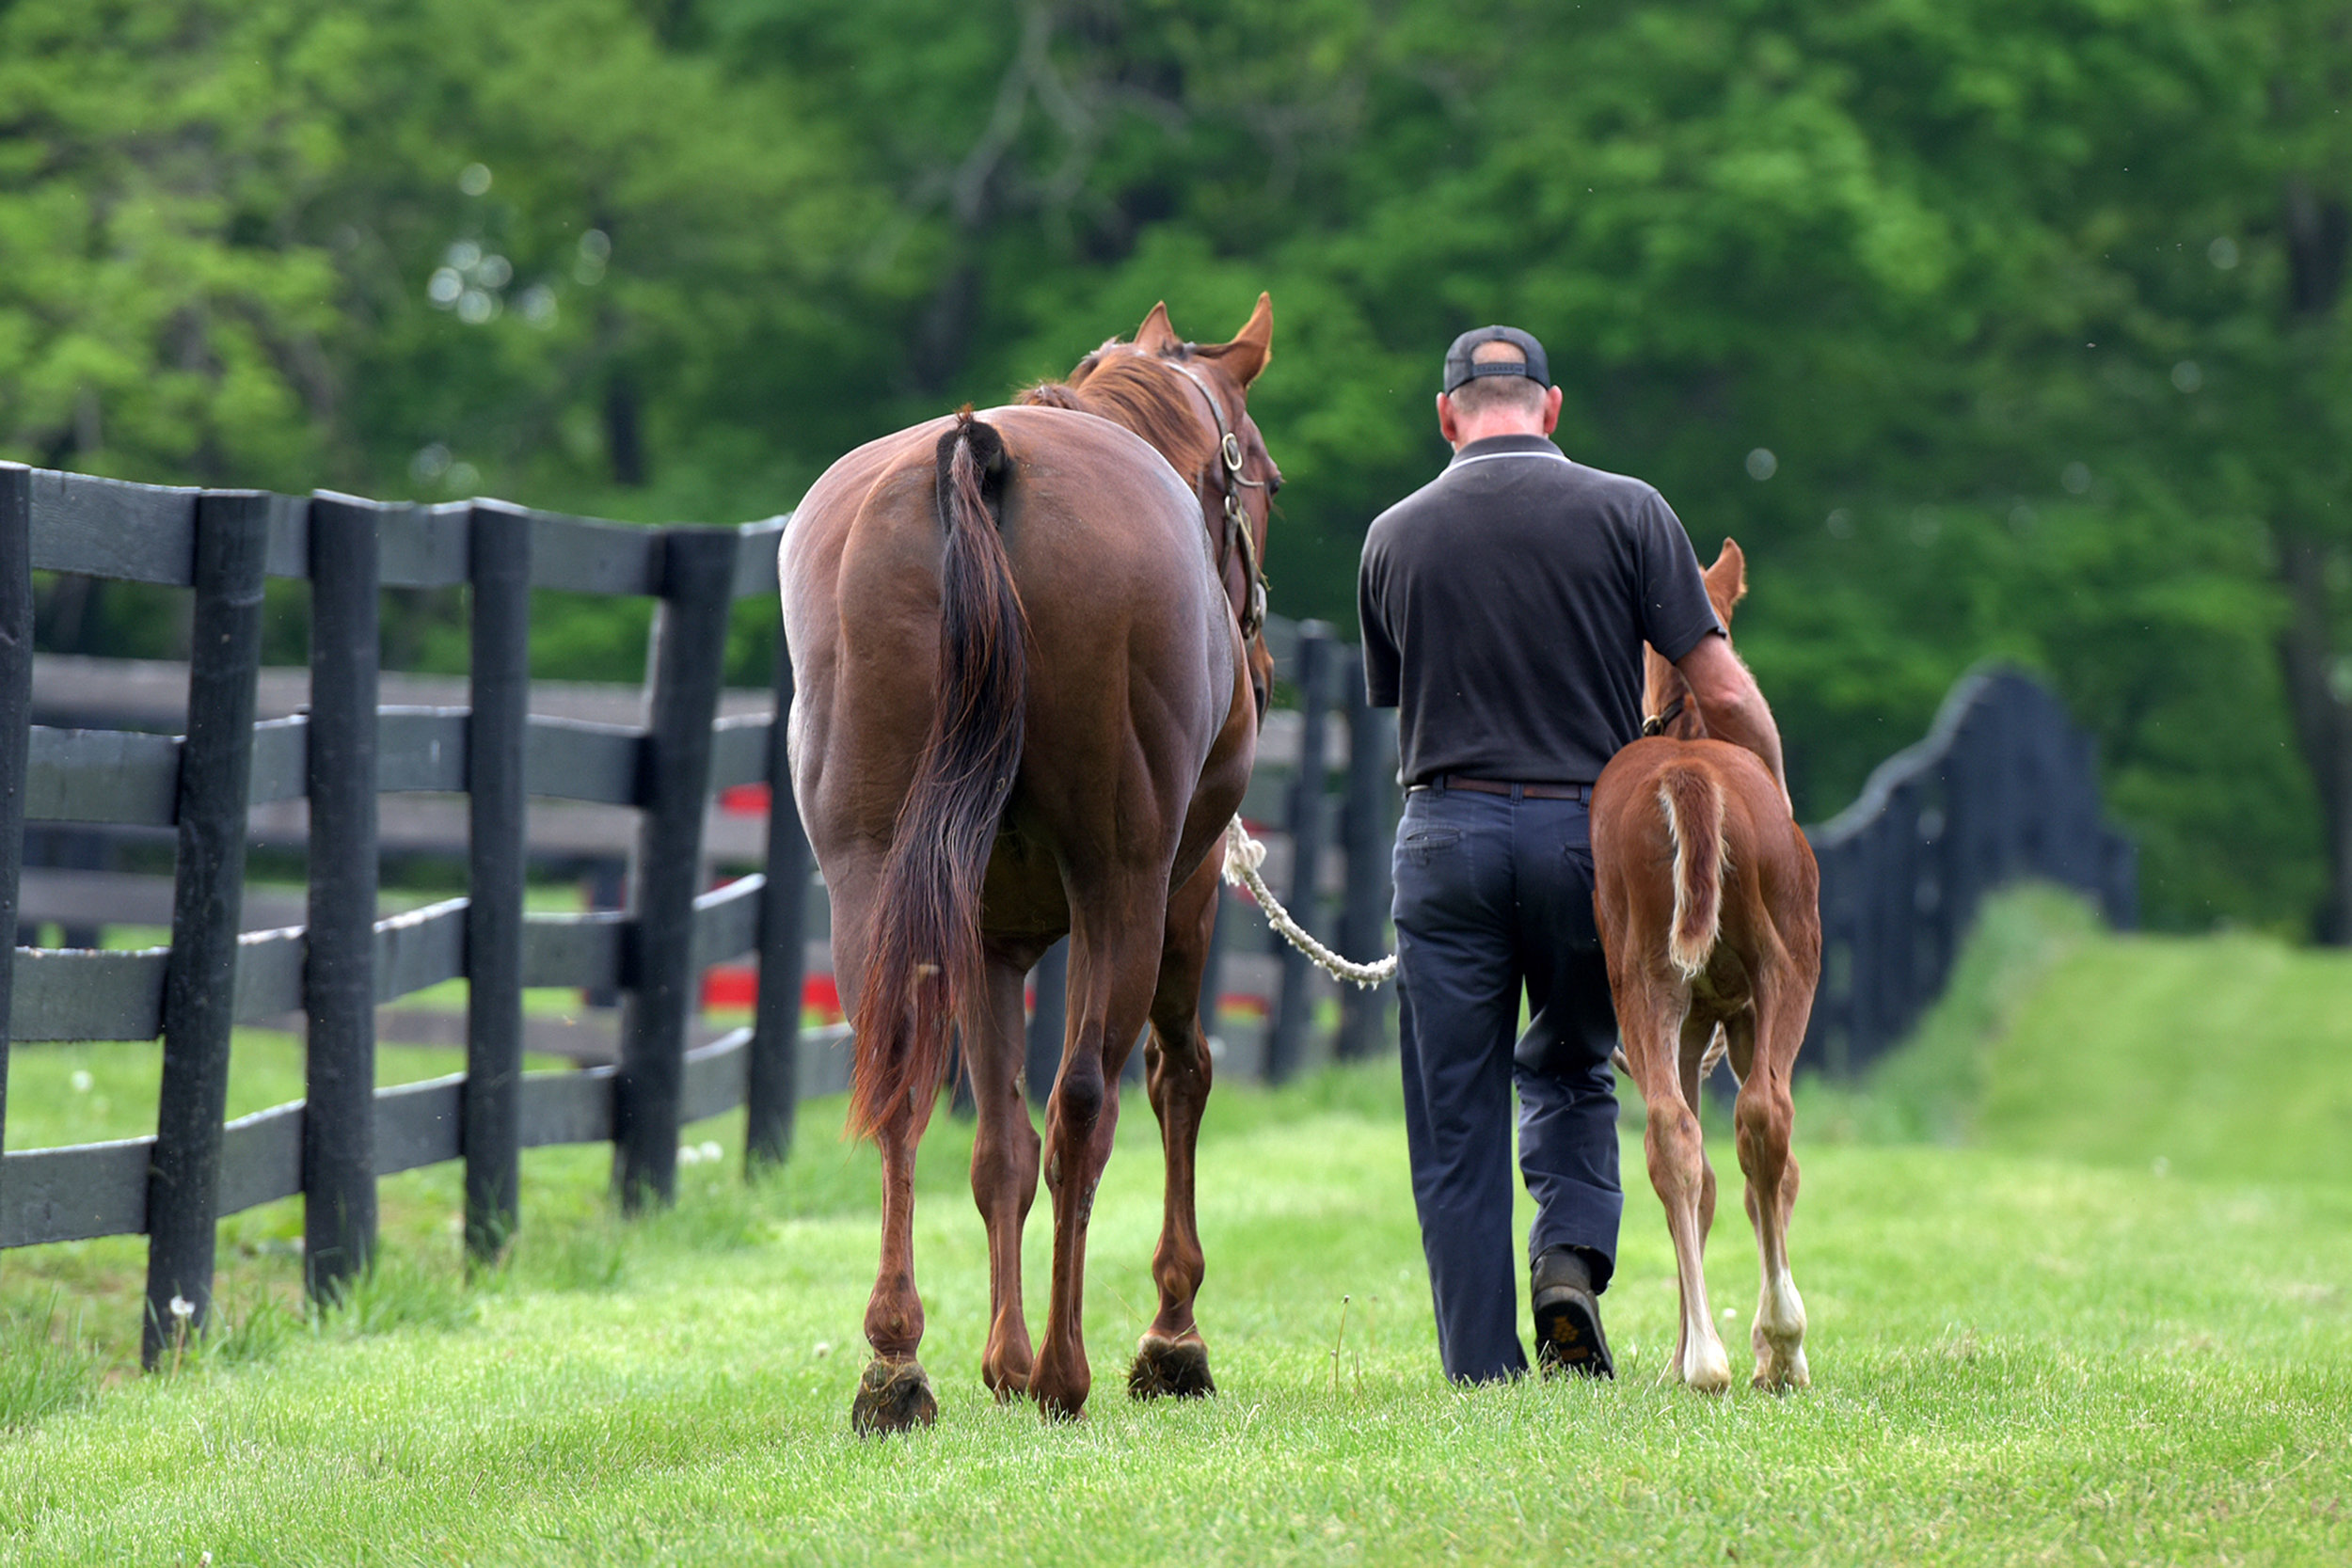 Mare_Foal_Manager_5293.jpg